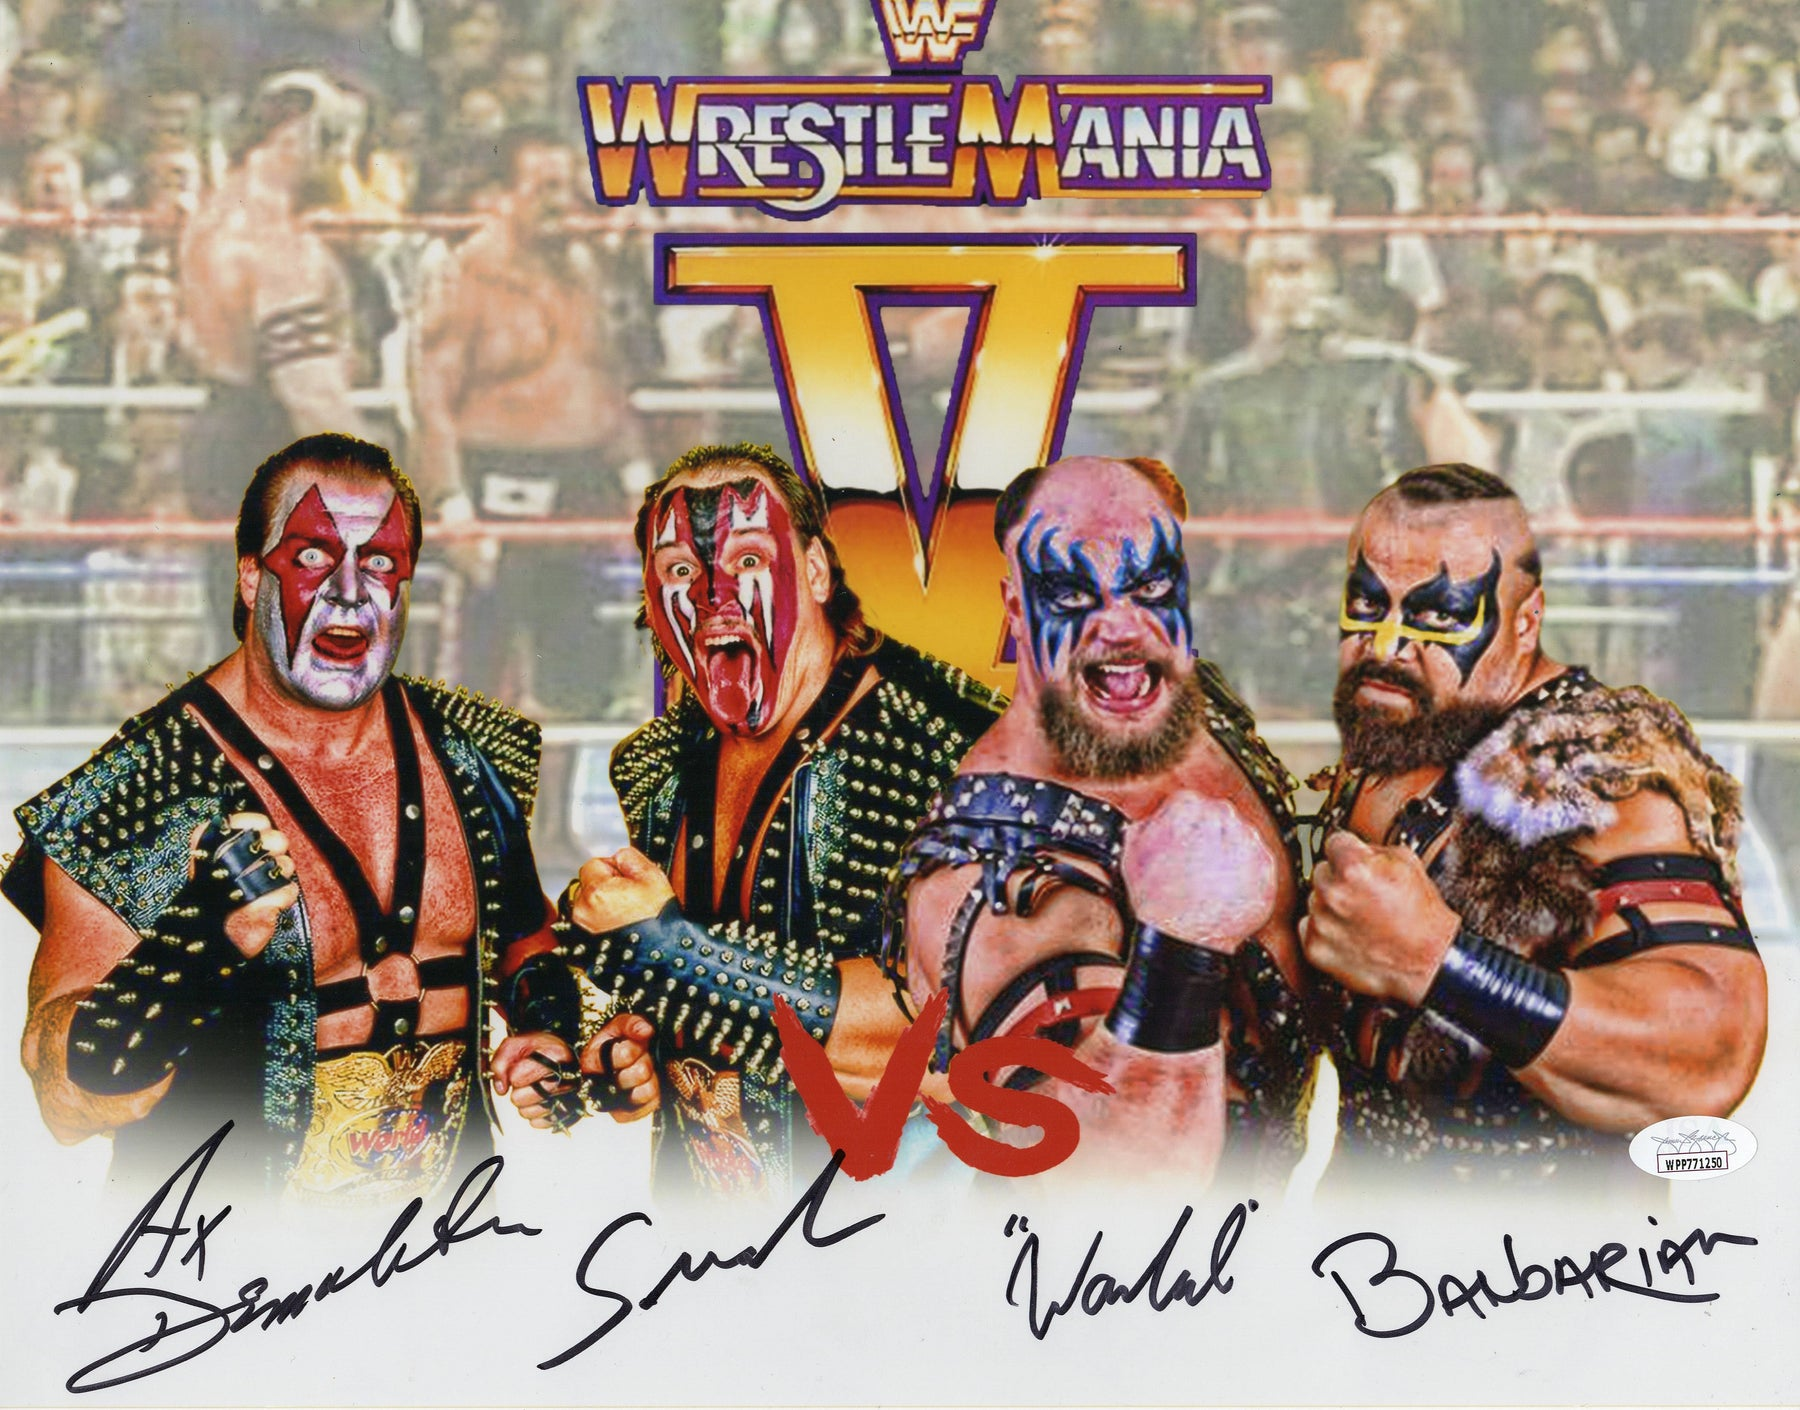 Demolition vs The Powers of Pain Autograph 11x14 Photo Wrestlemania V JSA COA